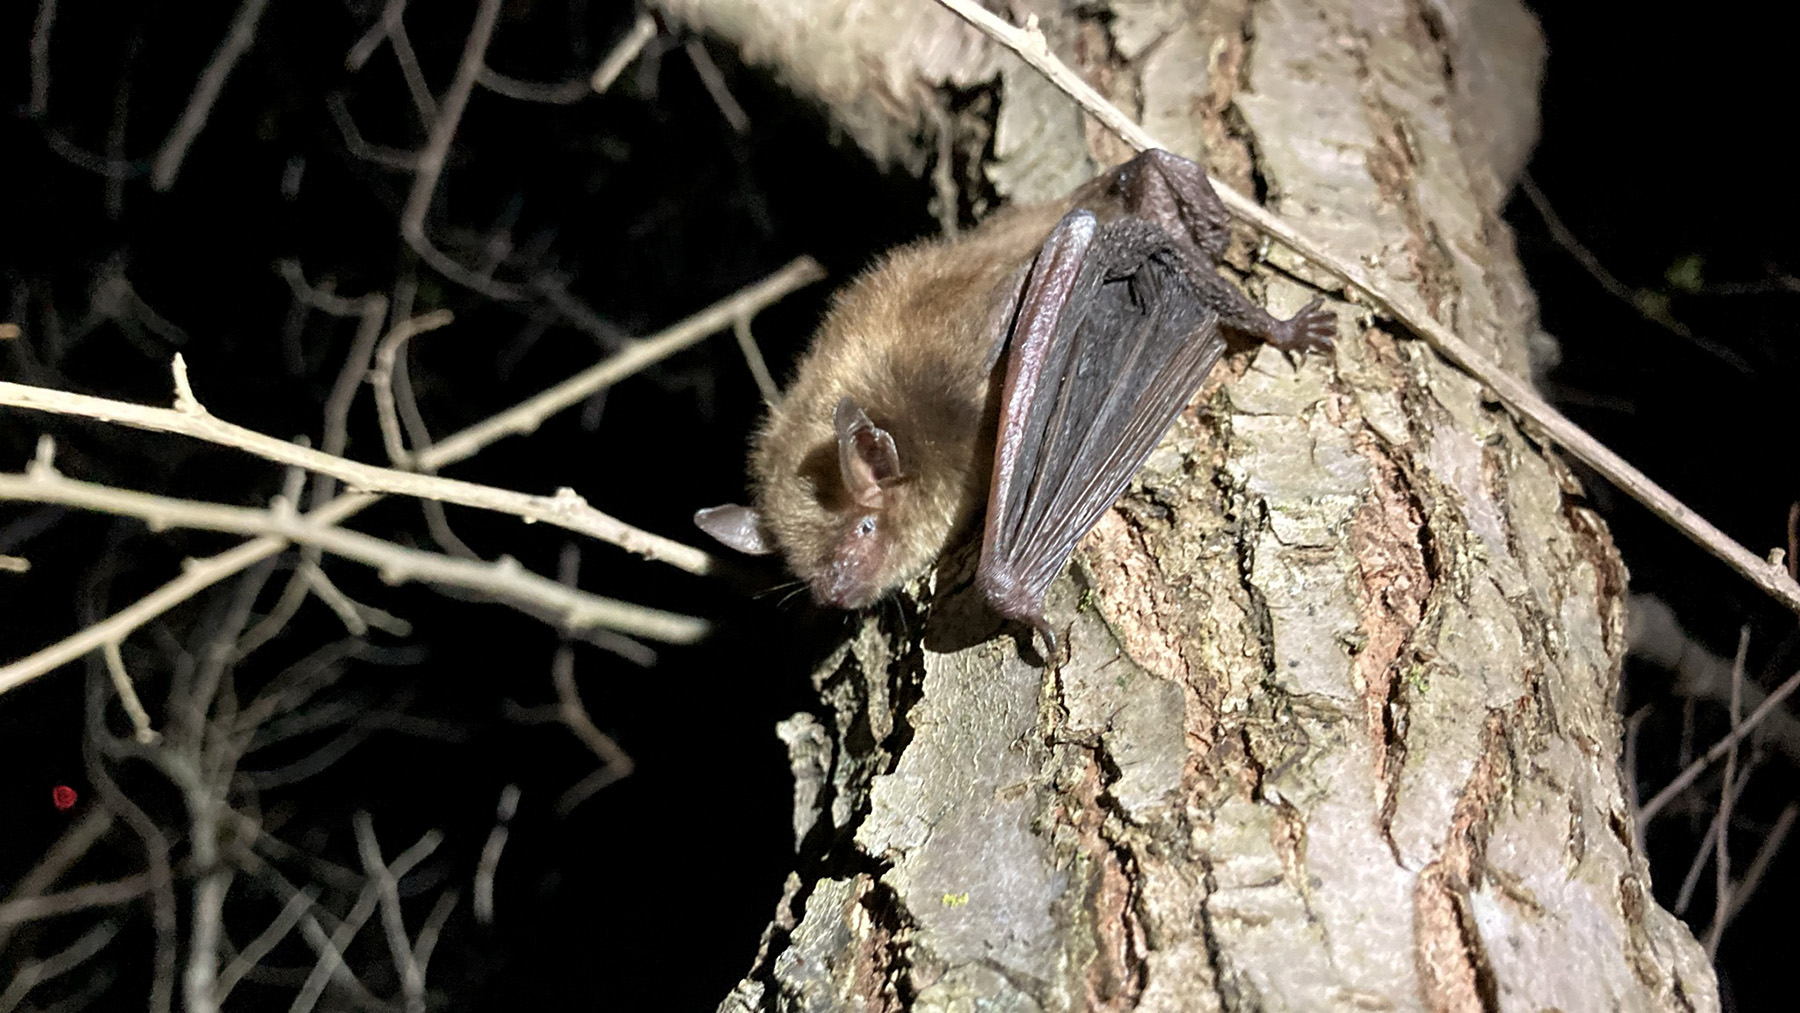 A released big brown bat, Eptesicus fuscus, clings to a tree. Photo by Sarah Gaulke